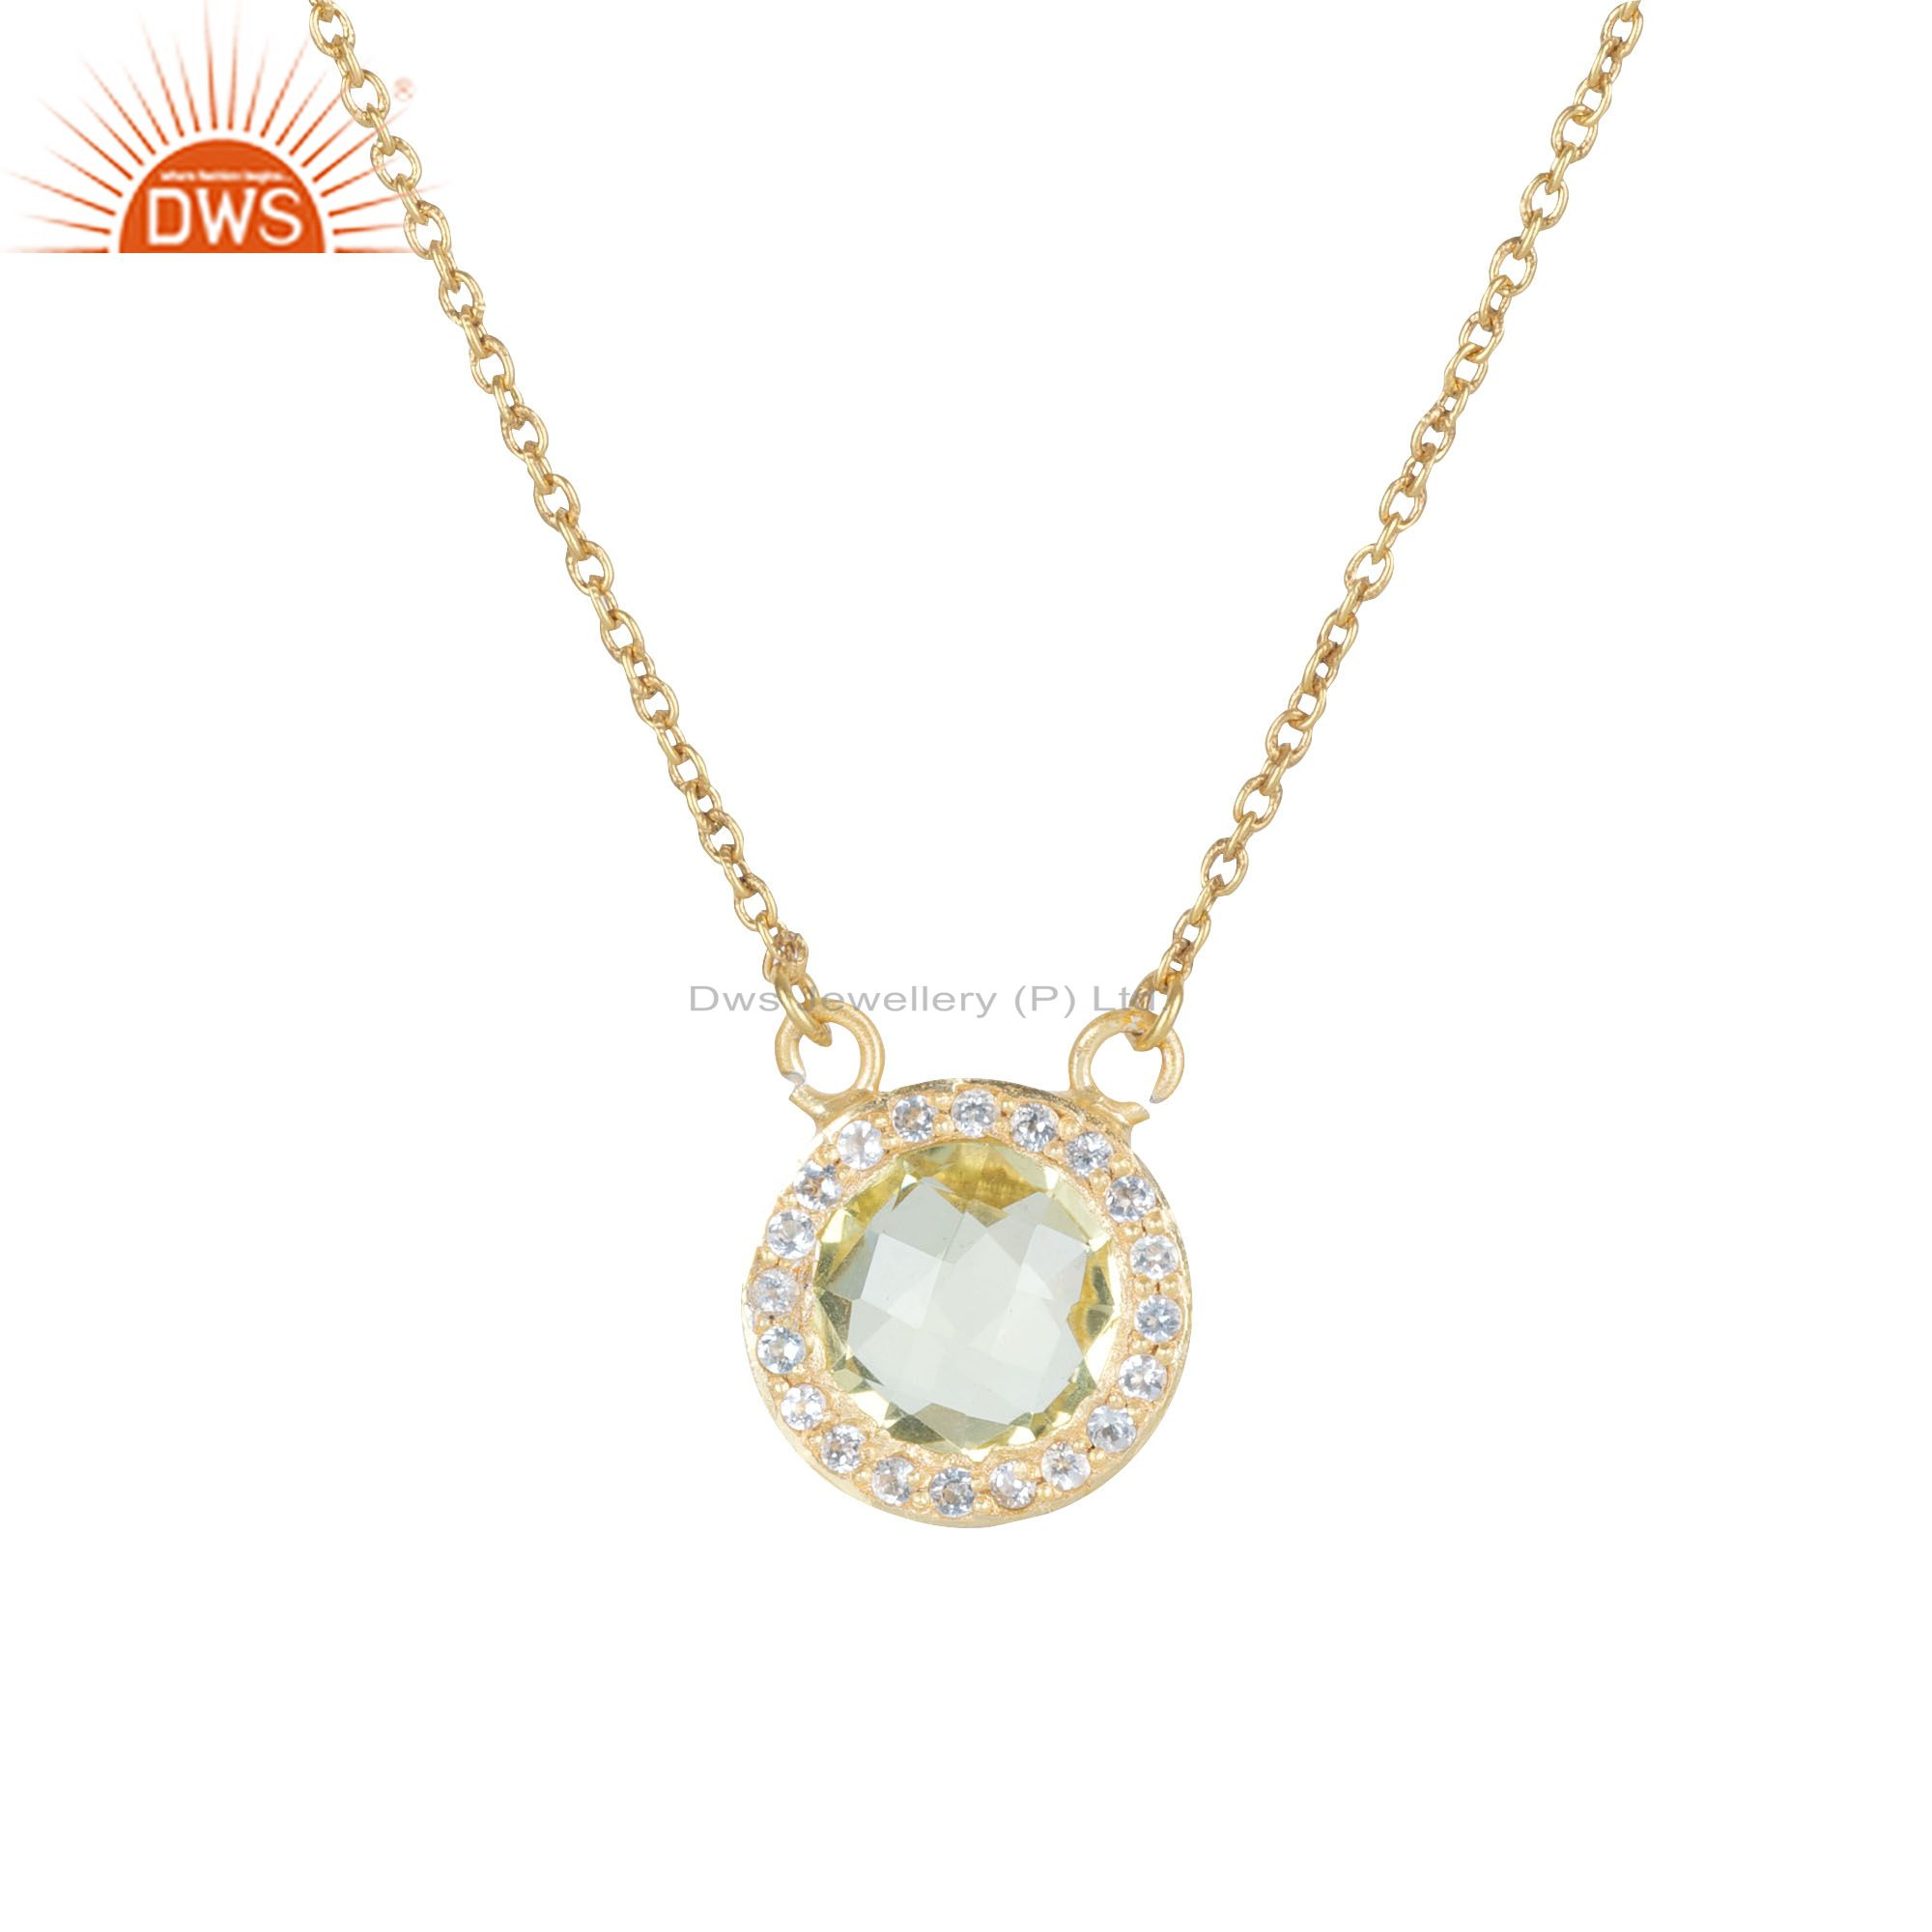 18K Gold Plated Sterling Silver Lemon Topaz And White Topaz Pendant Necklace